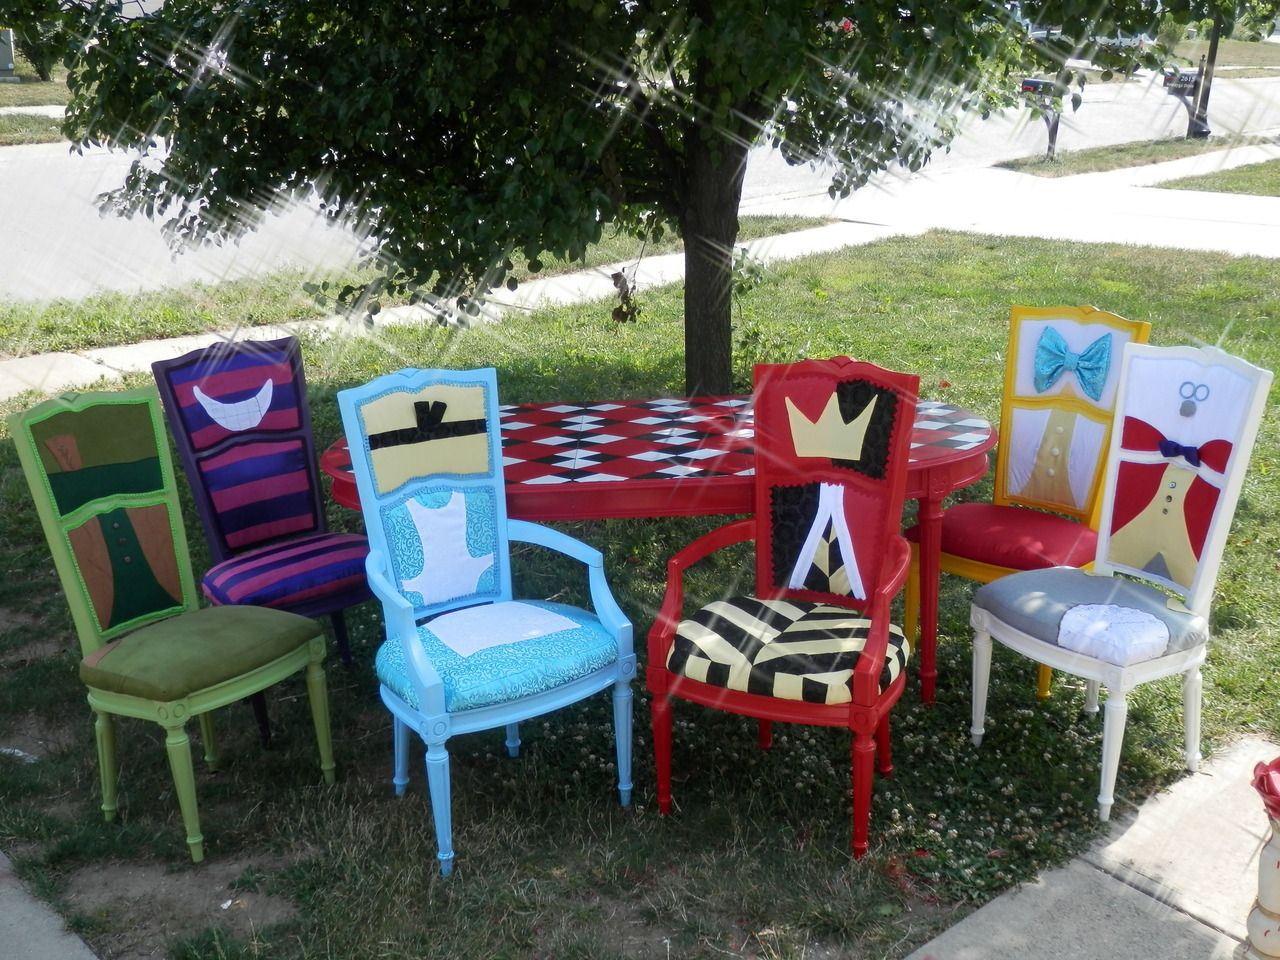 Alice In Wonderland Chair Rocking Pillows Heck Yeah Disney Merch Dining Table I